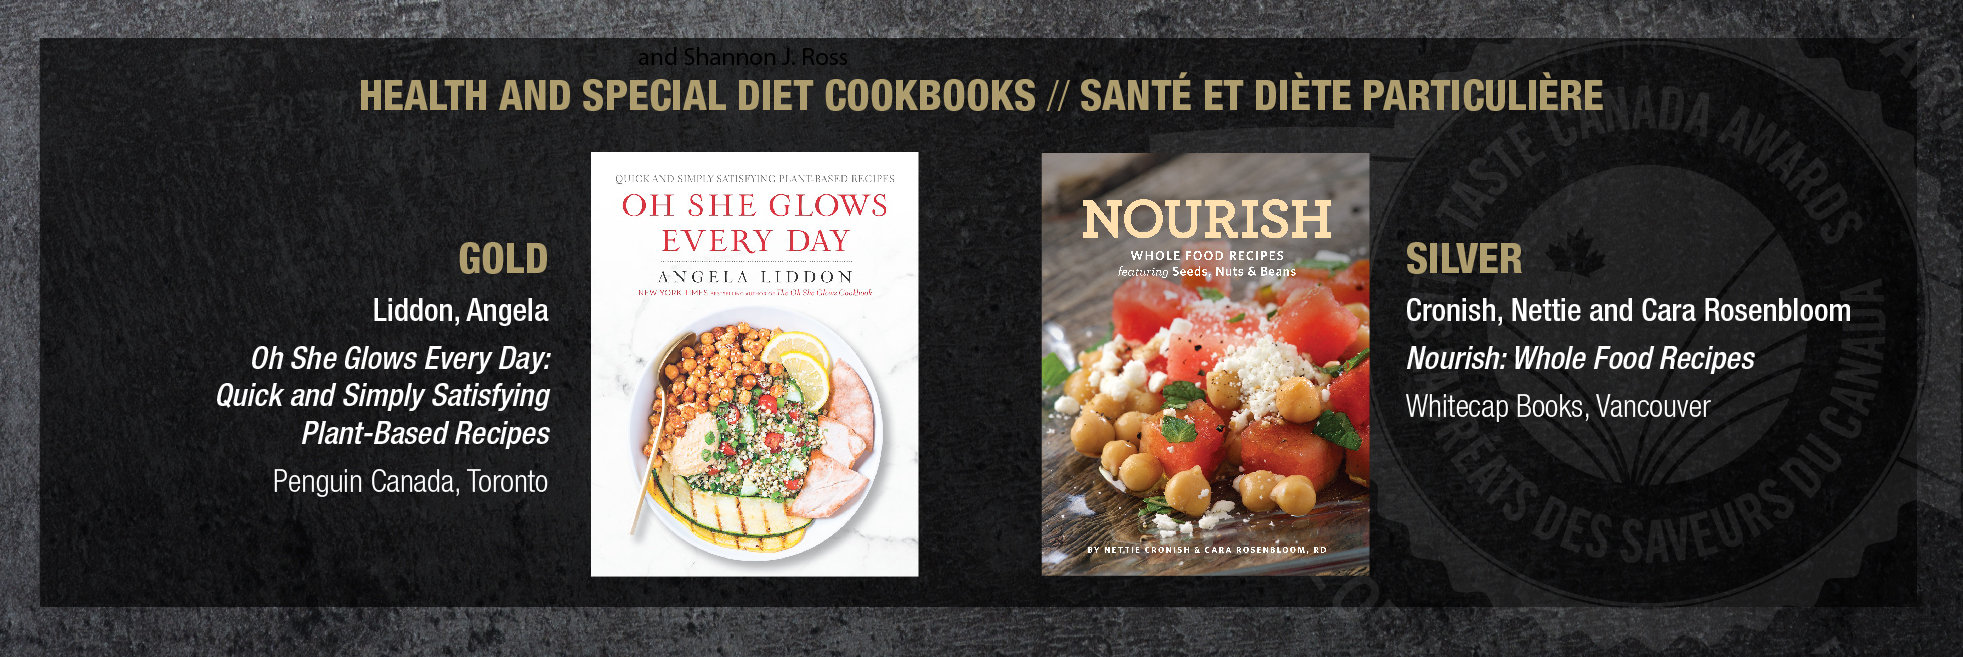 Nourish wins silver at taste canada cookbook awards netties cara and i accepting the silver award forumfinder Choice Image